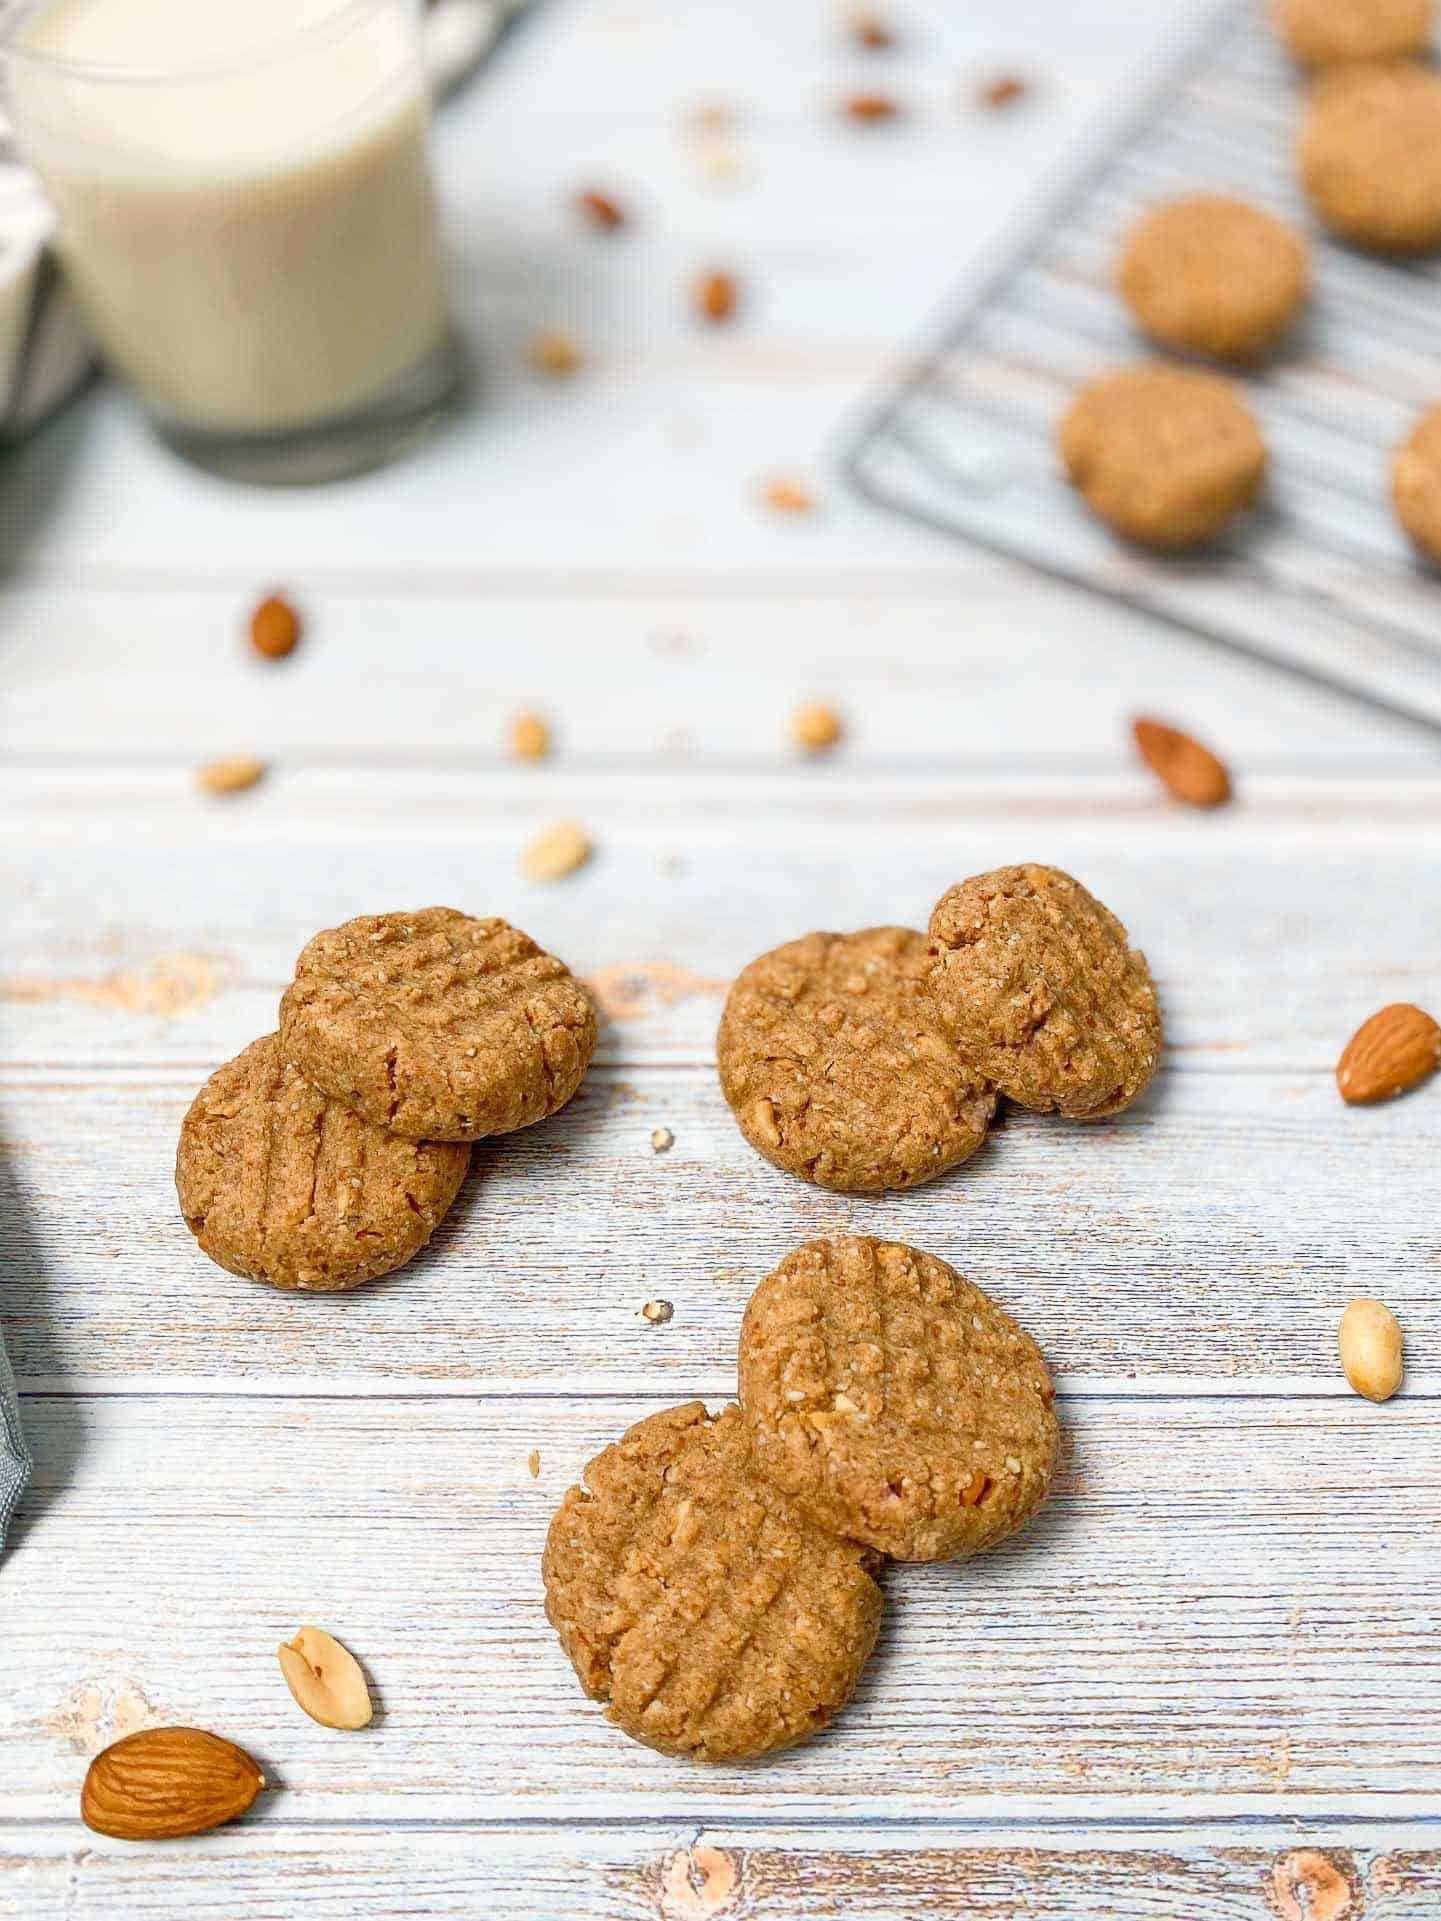 peanut butter almond cookies scattered on deck with glass of milk in background